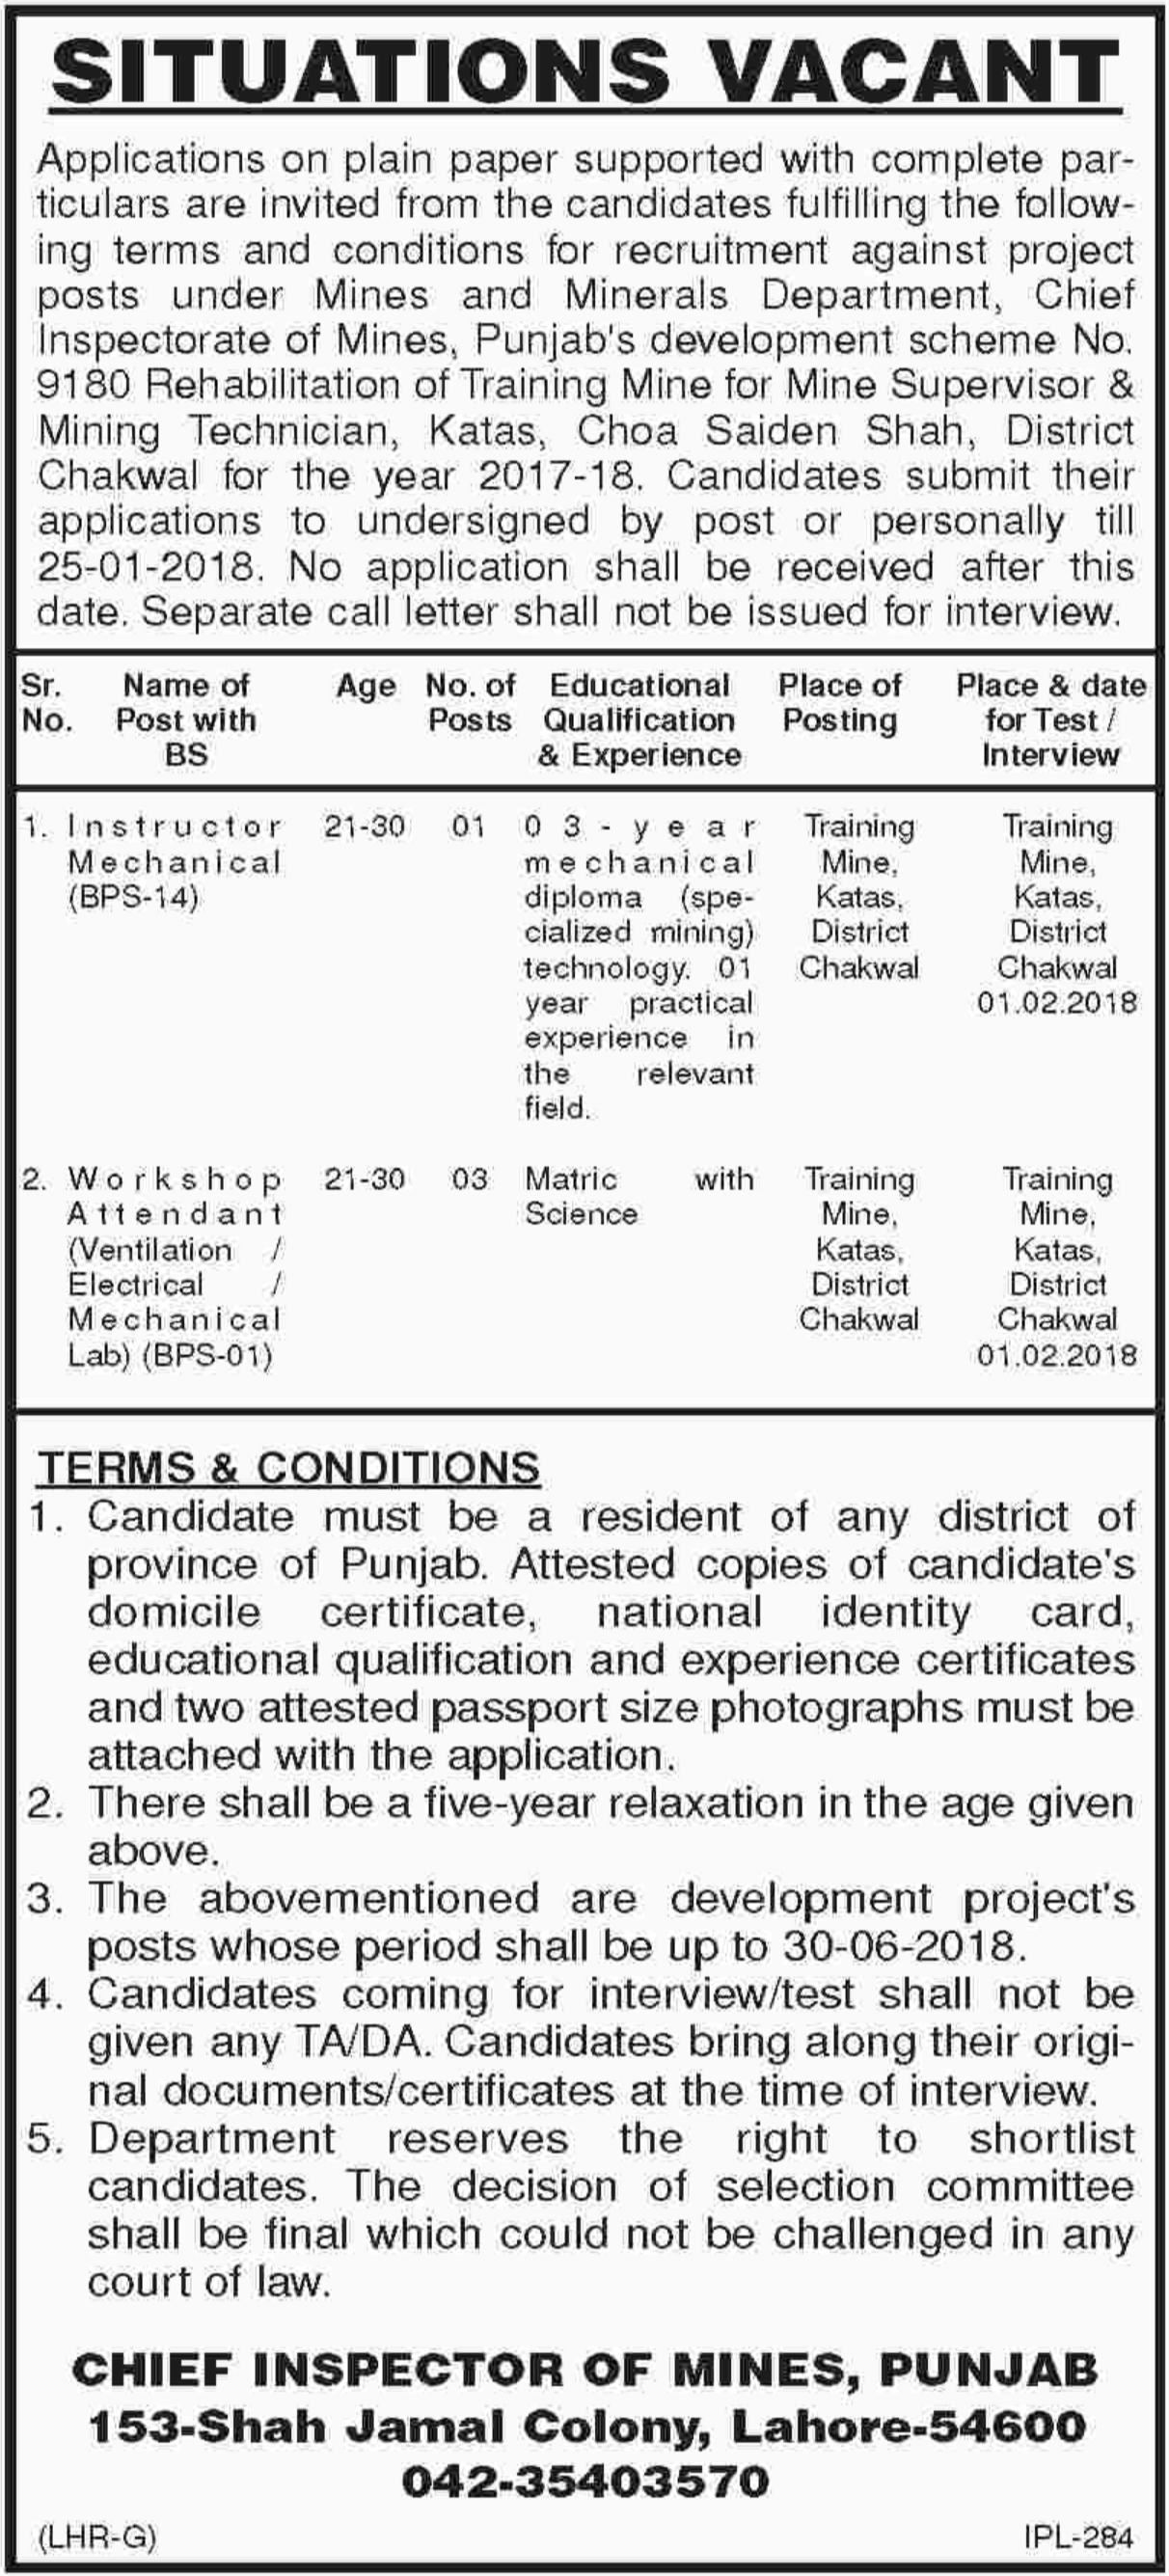 Instructor Mechanical & Workshop Attendant Jobs 2018